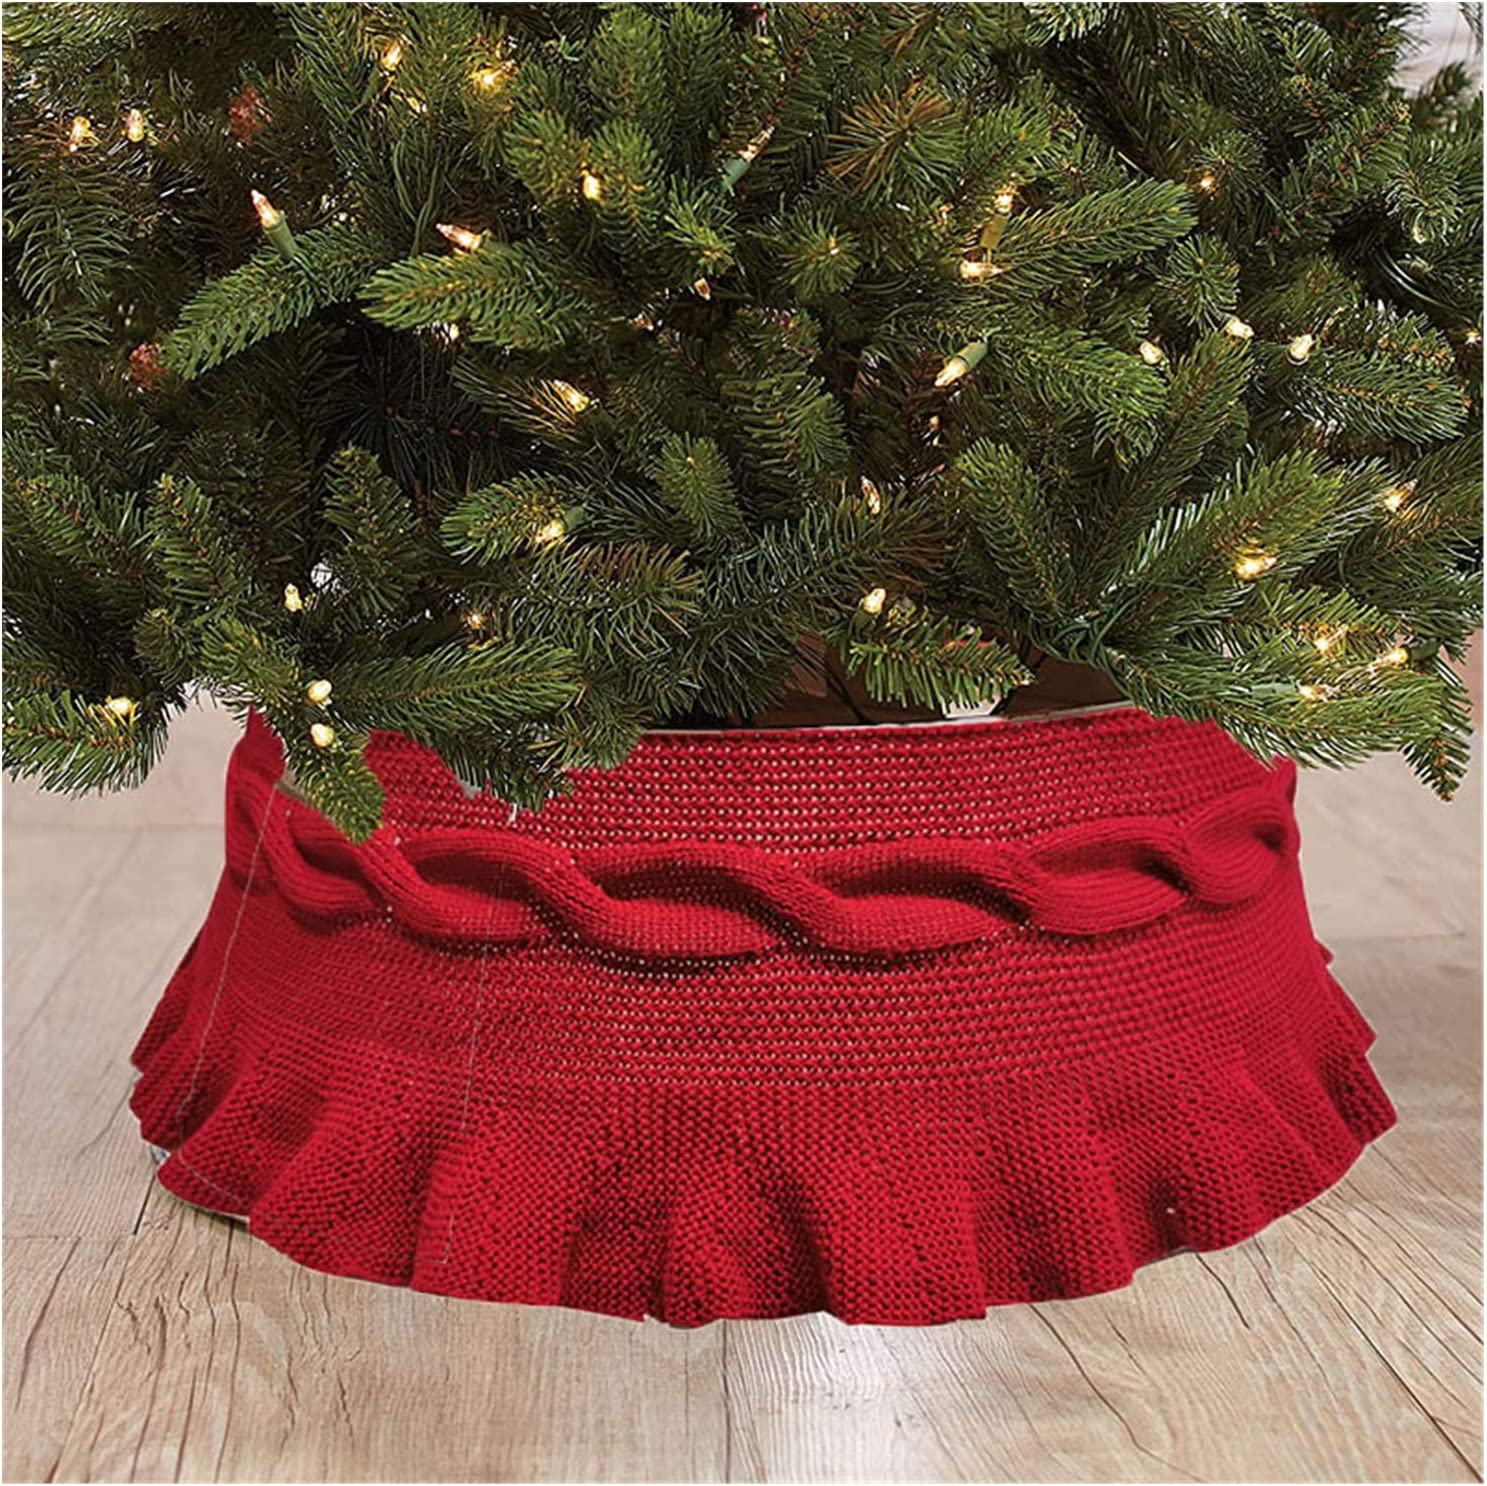 YOGANHJAT Christmas Tree Skirt 3D Xmas Knitting In a popularity Chris Direct stock discount